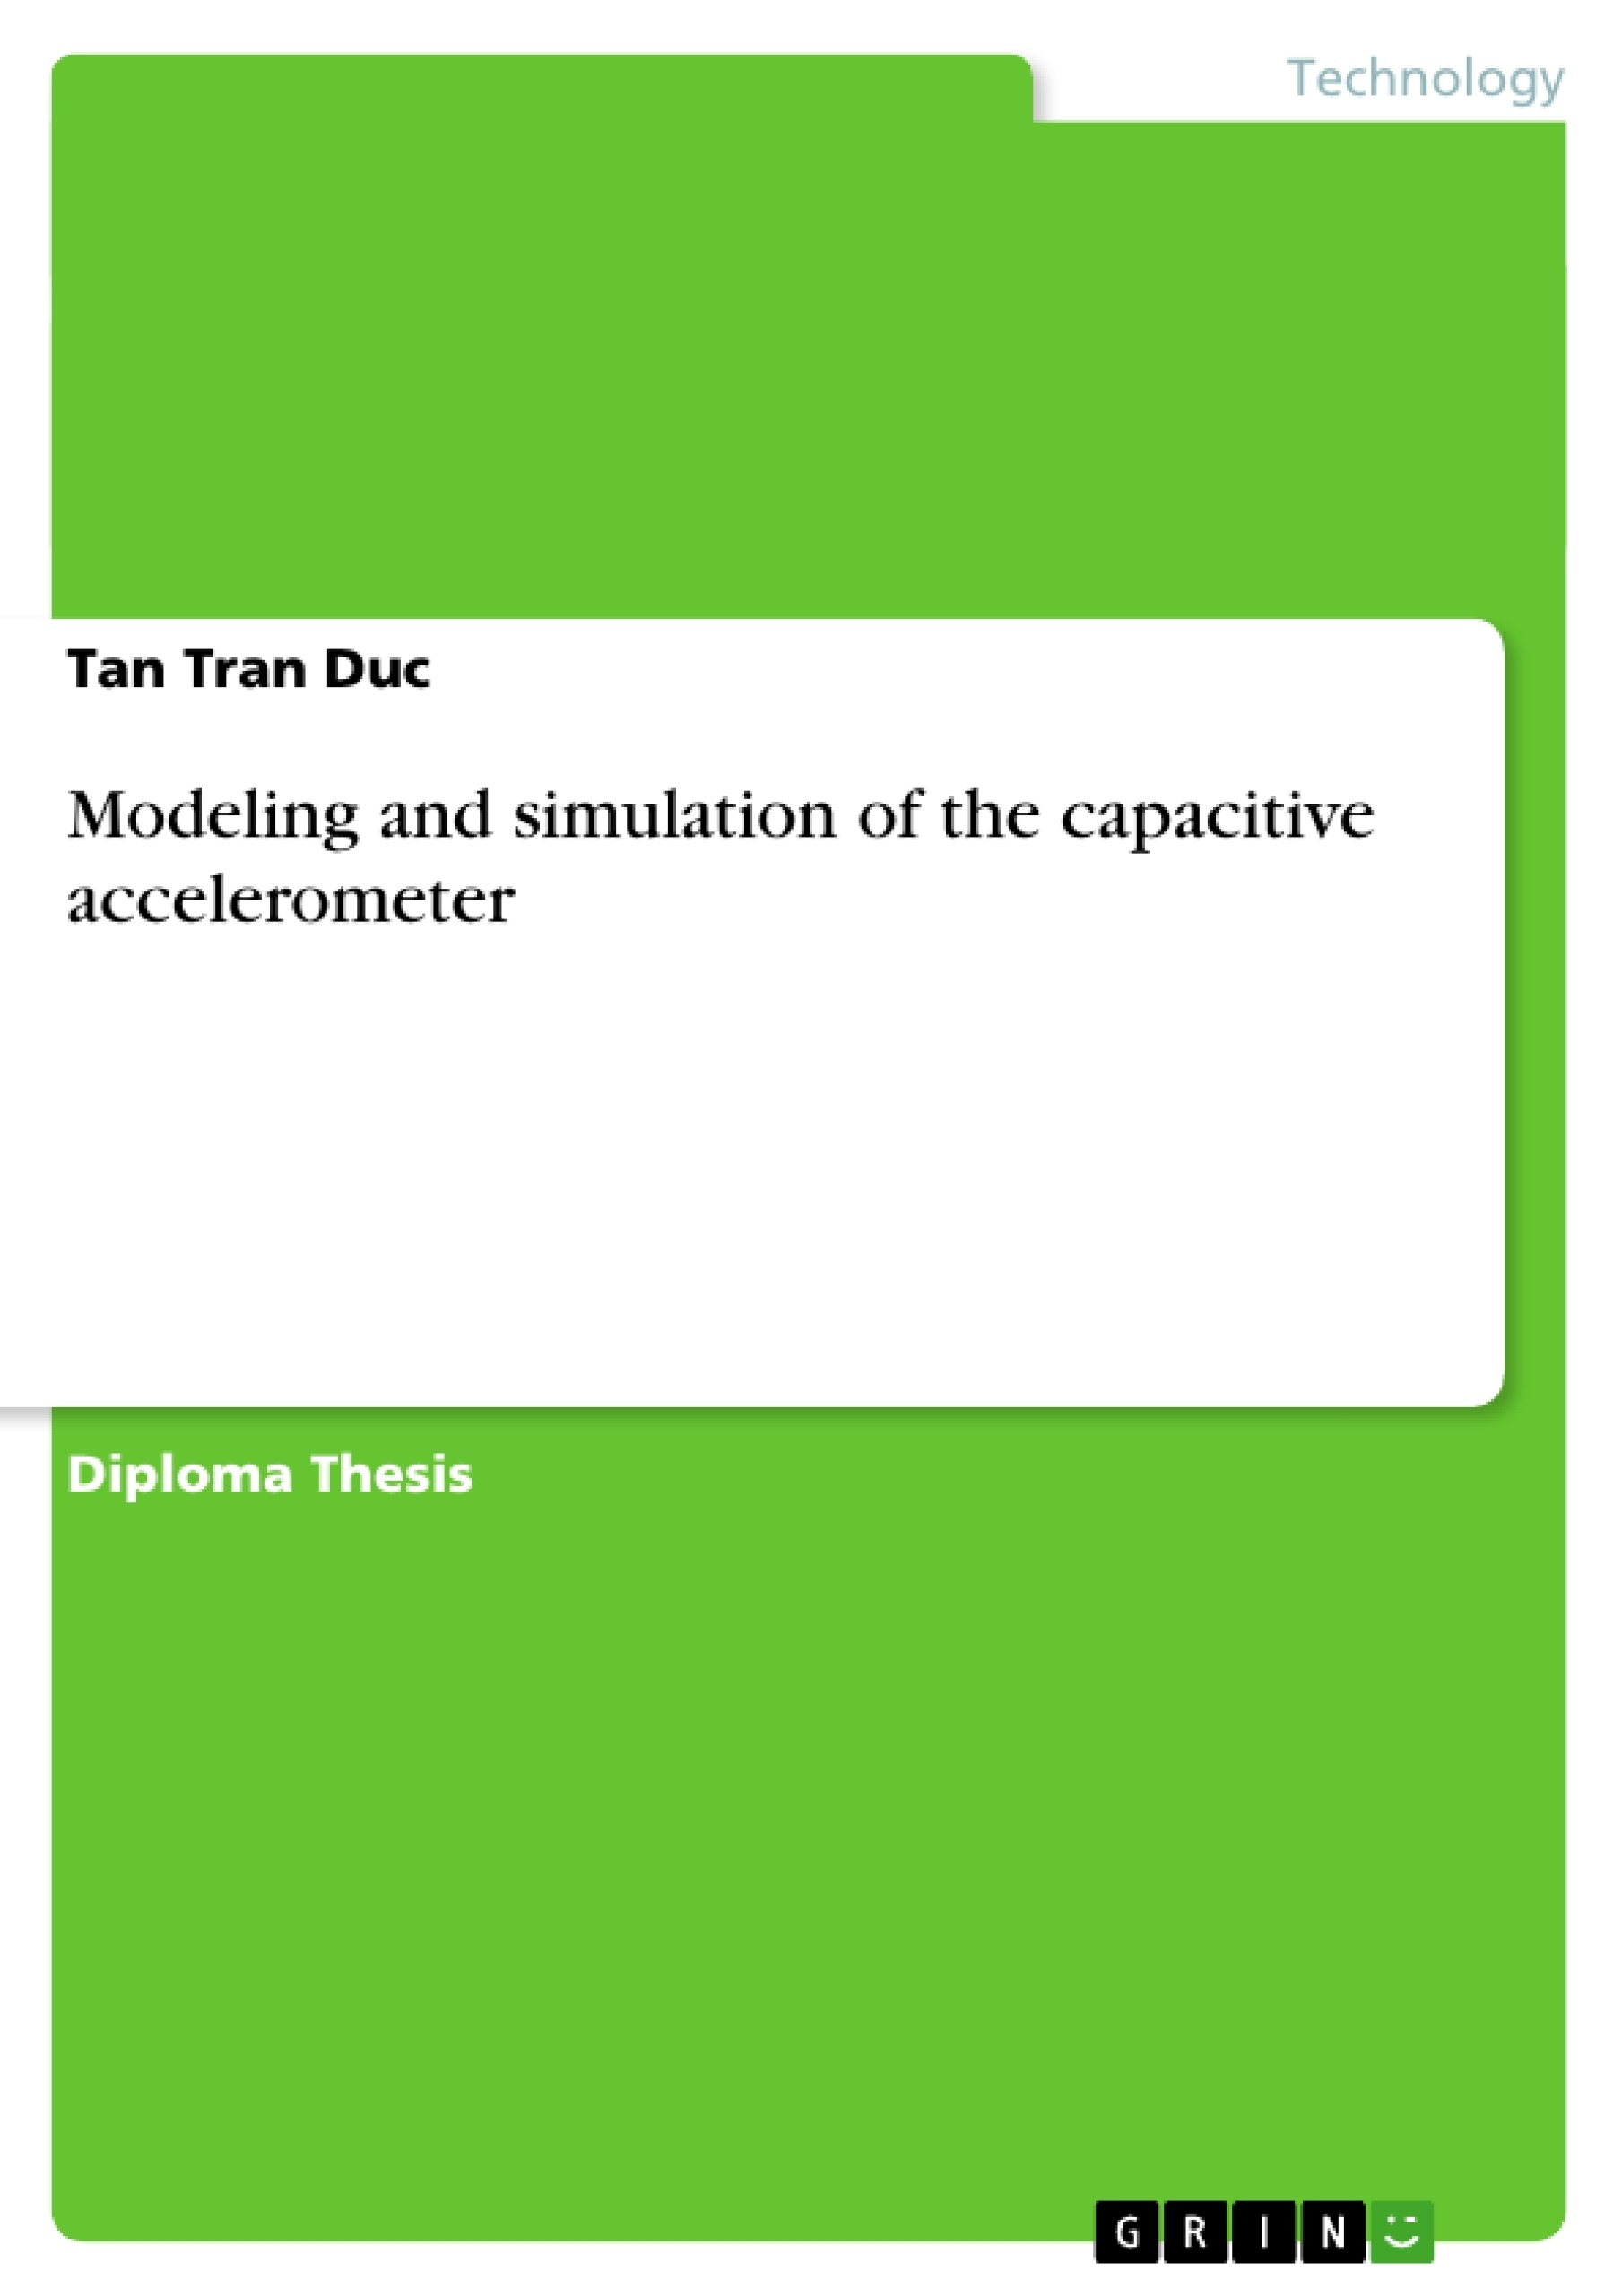 Title: Modeling and simulation of the capacitive accelerometer